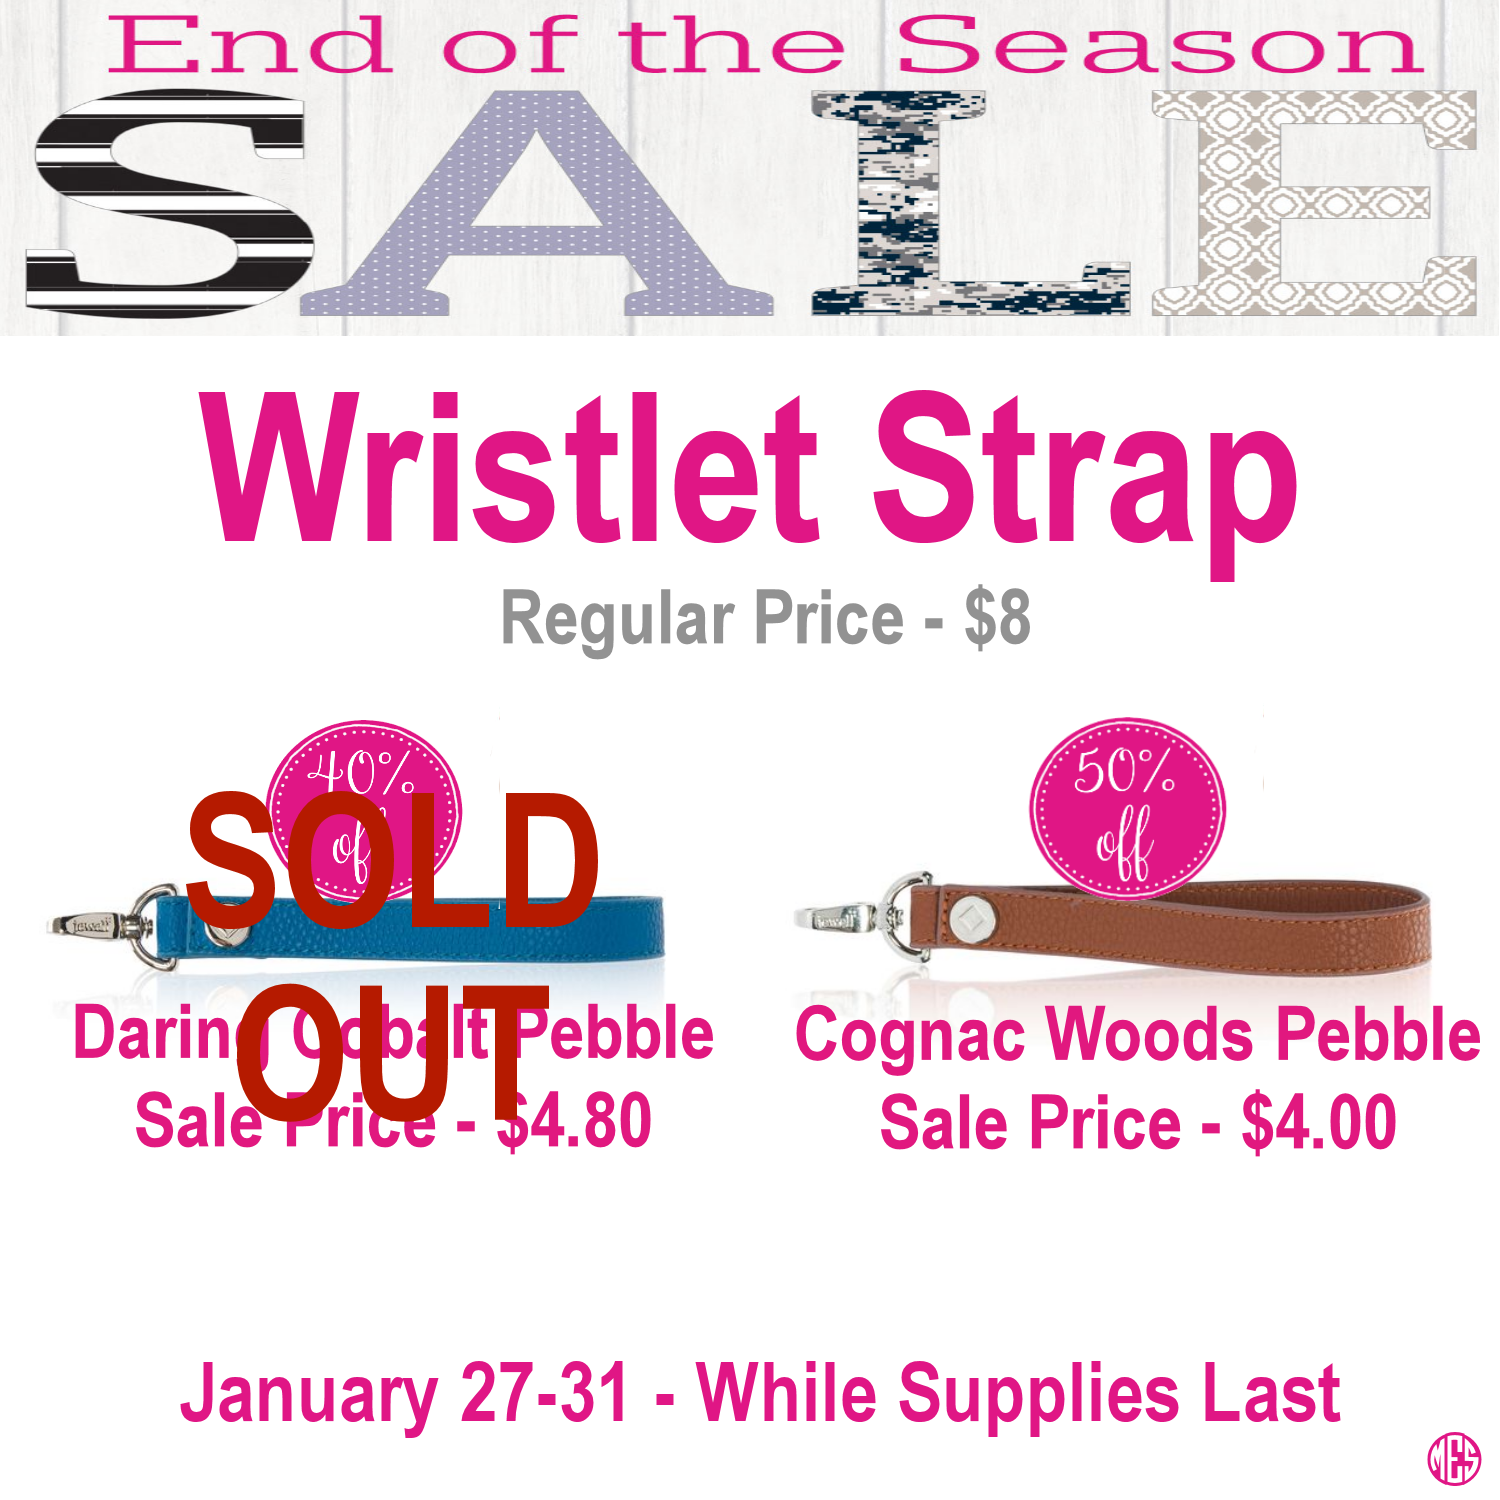 Thirty-One Wristlet Strap is on sale during End of the Season Sale